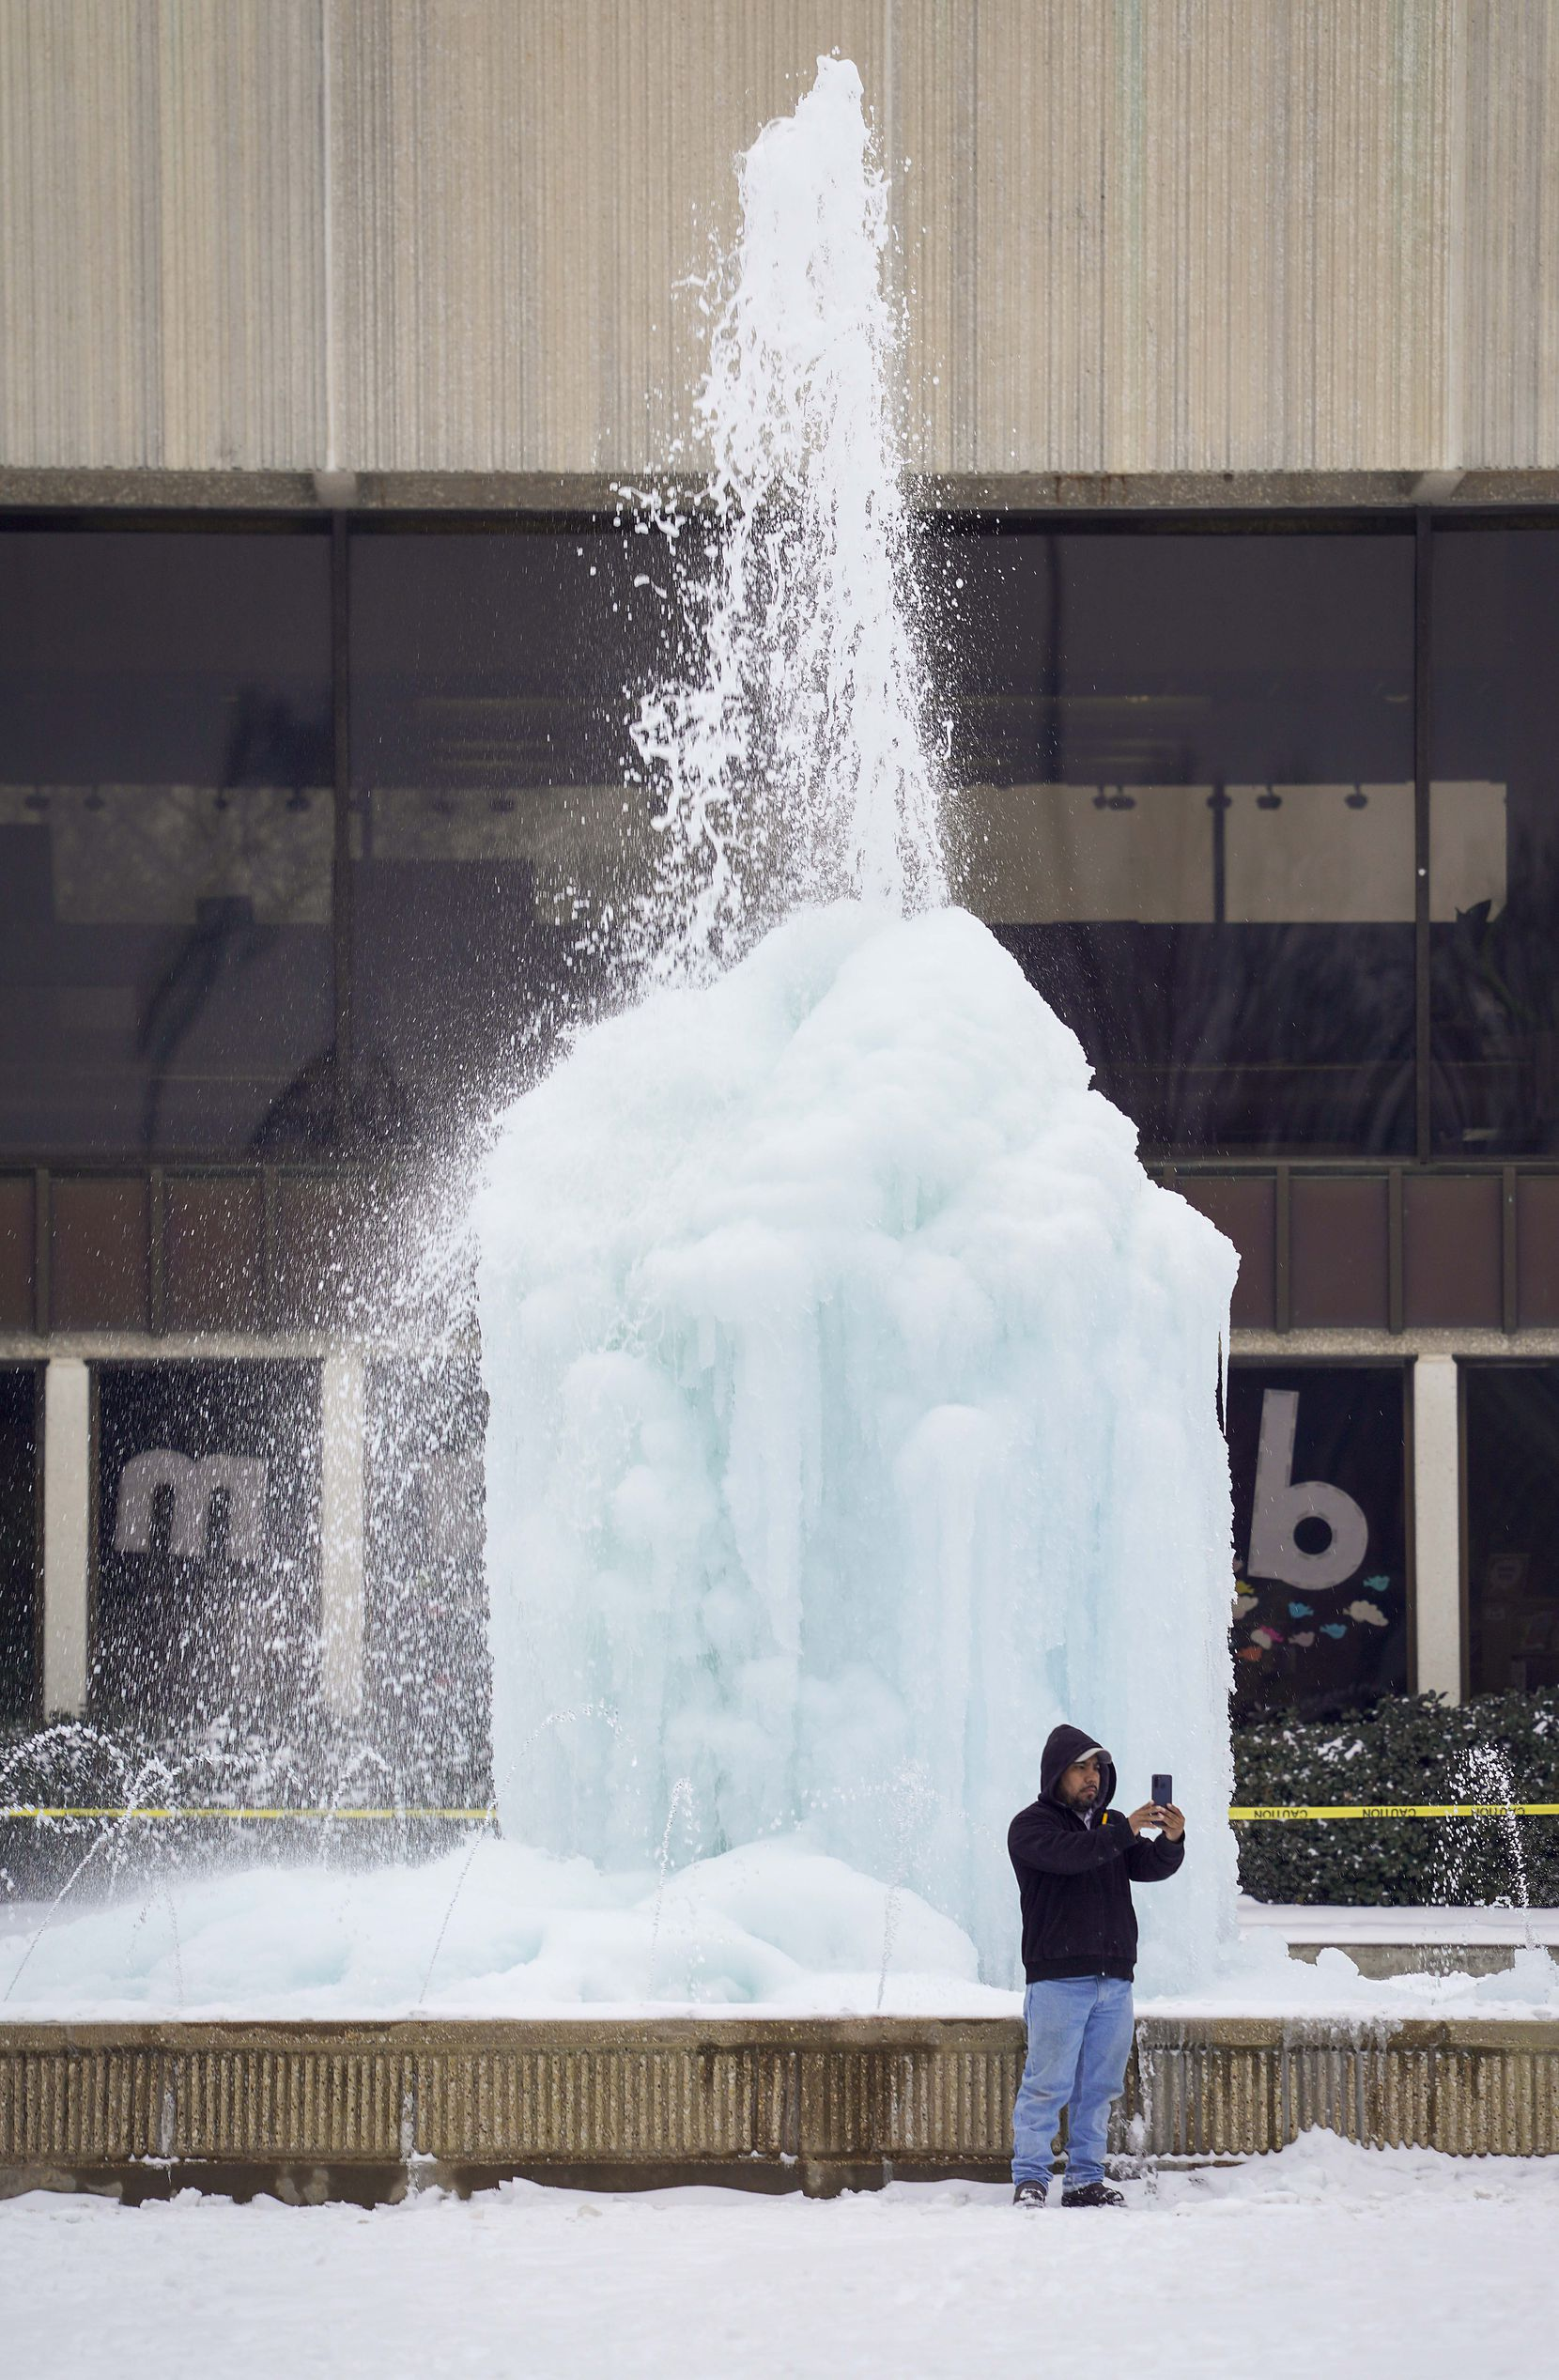 Carlos de Jesus takes a selfie in front of the frozen fountain at the Richardson Civic Center after a second winter storm brought more snow and continued freezing temperatures to North Texas on Wednesday, Feb. 17, 2021, in Richardson. After watching the fountain freeze of the the past few days, de Jesus, who lives nearby, said he decided to take a photo Wednesday on his way home from work.